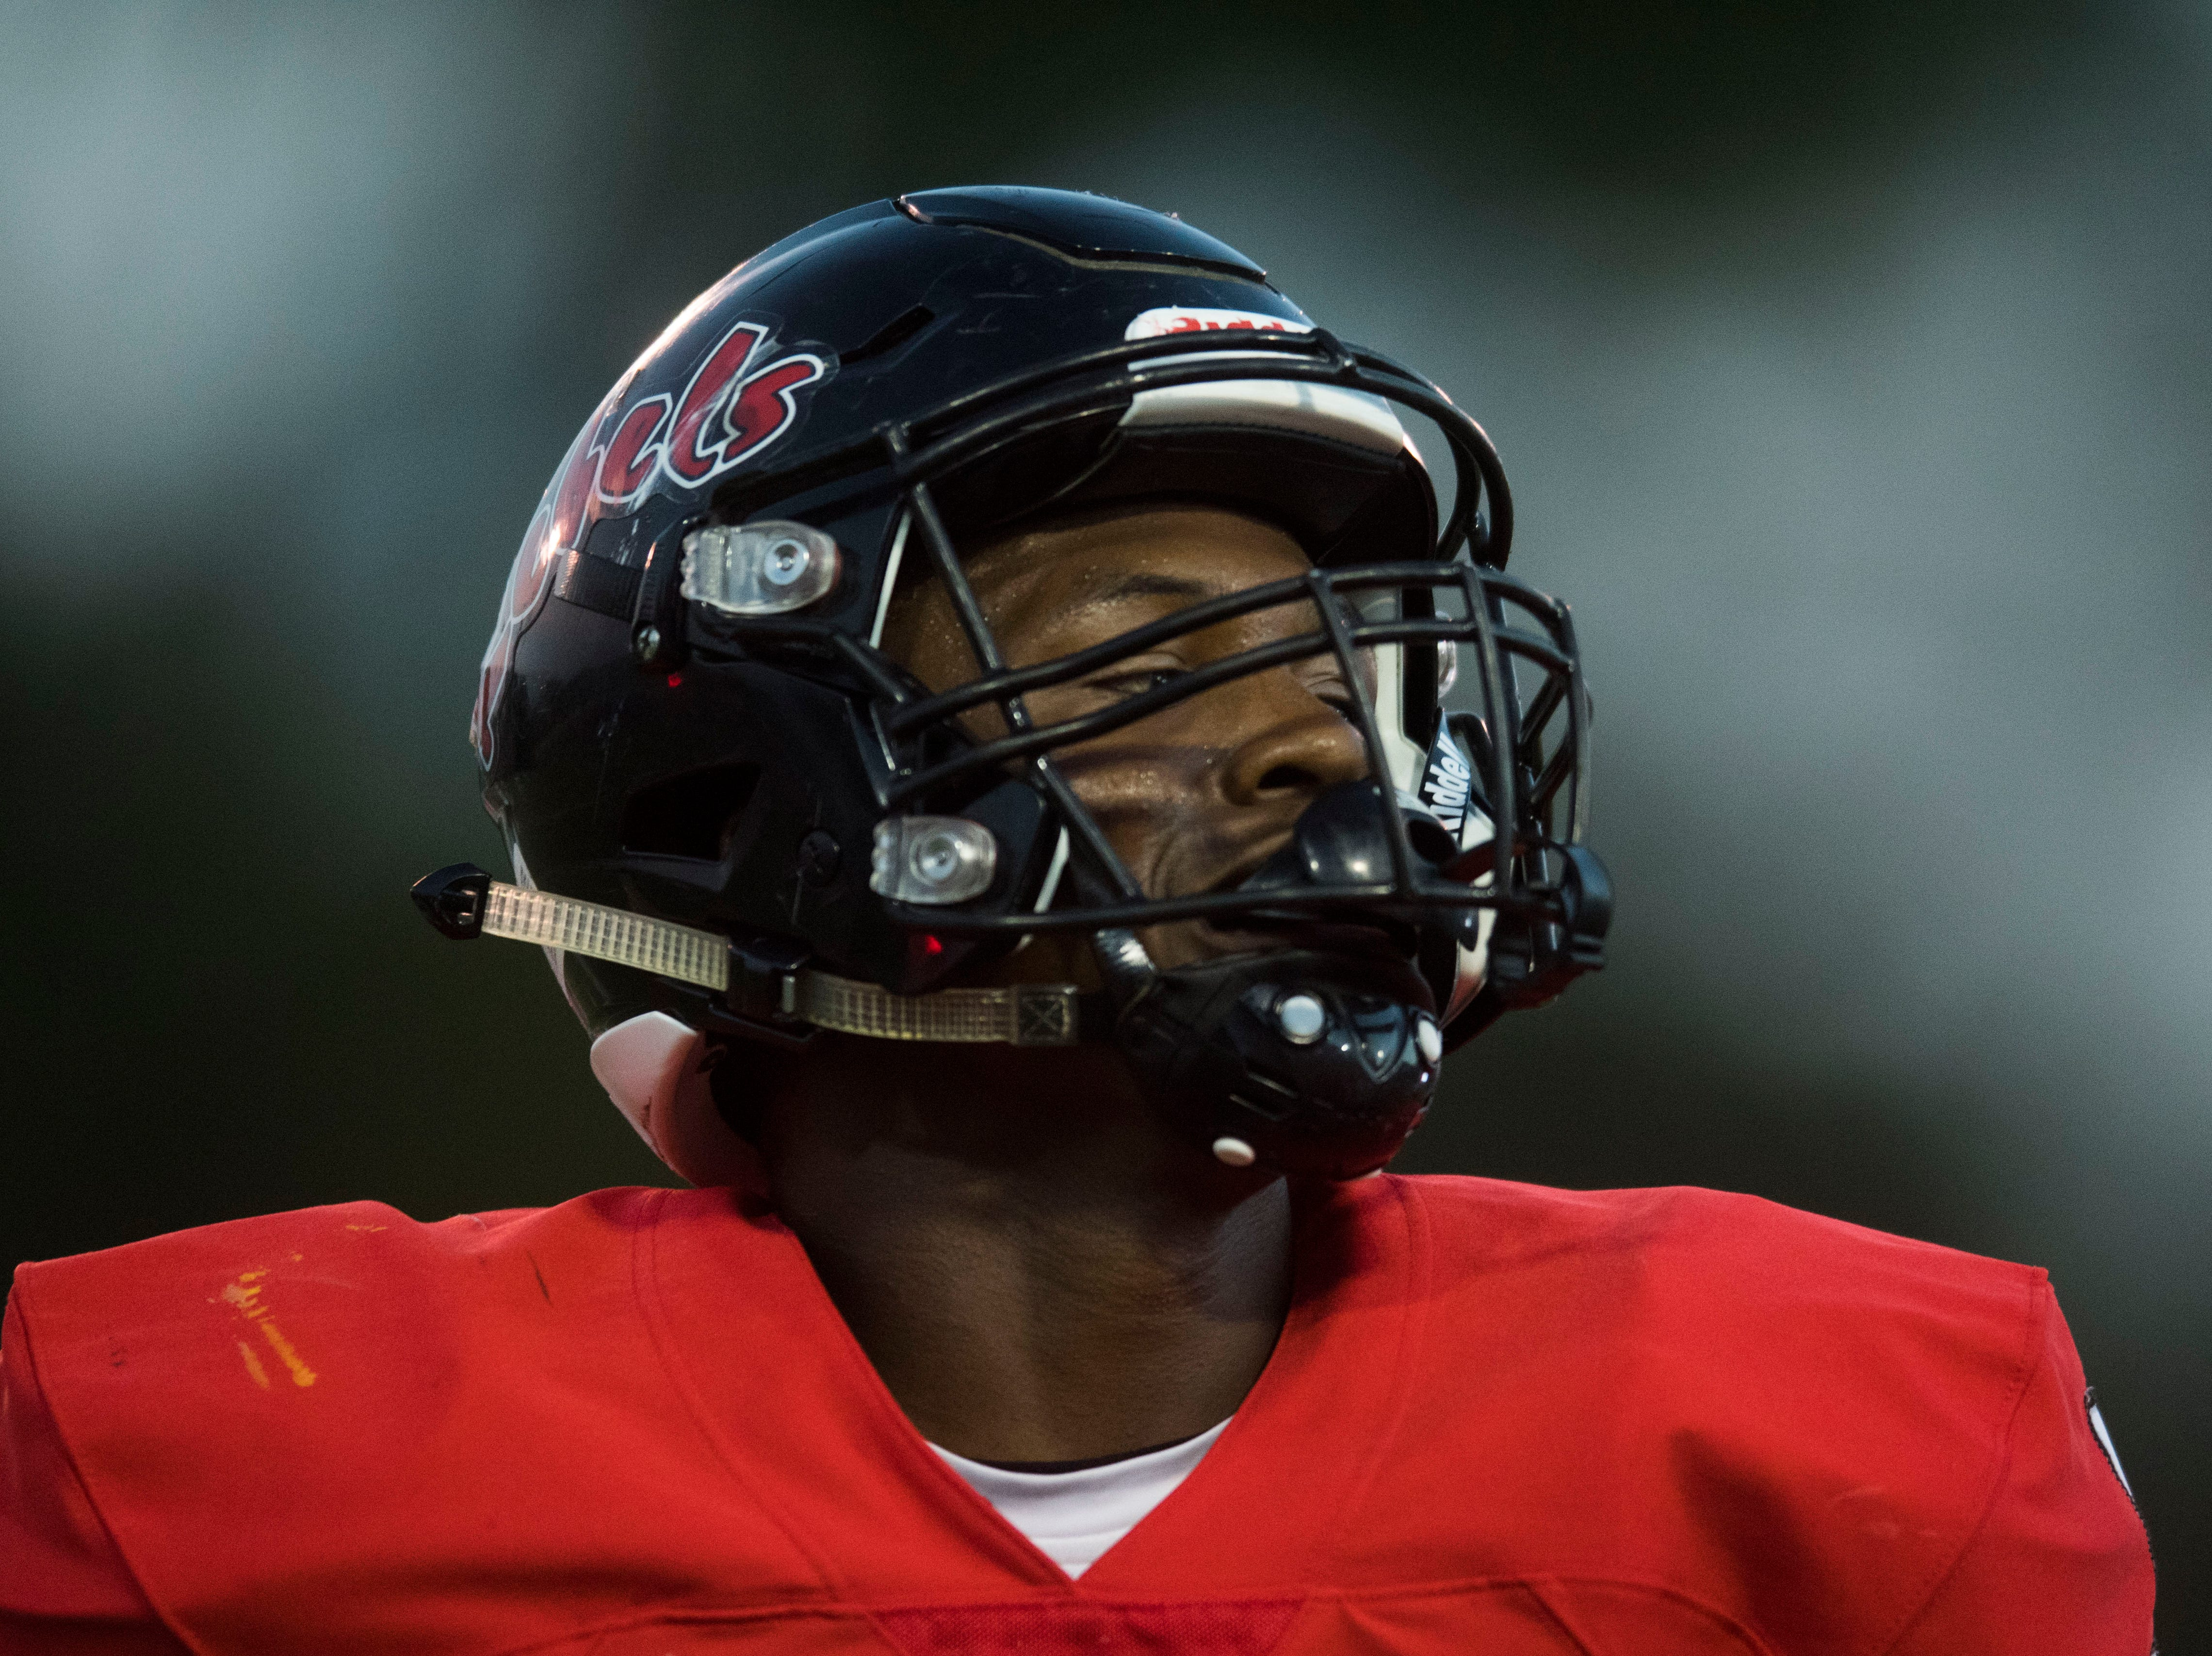 Maryville's DaVon Kimble (5) celebrates a turnover during a game between Cleveland and Maryville at Maryville Thursday, Oct. 4, 2018. Maryville defeated Cleveland 42-7.